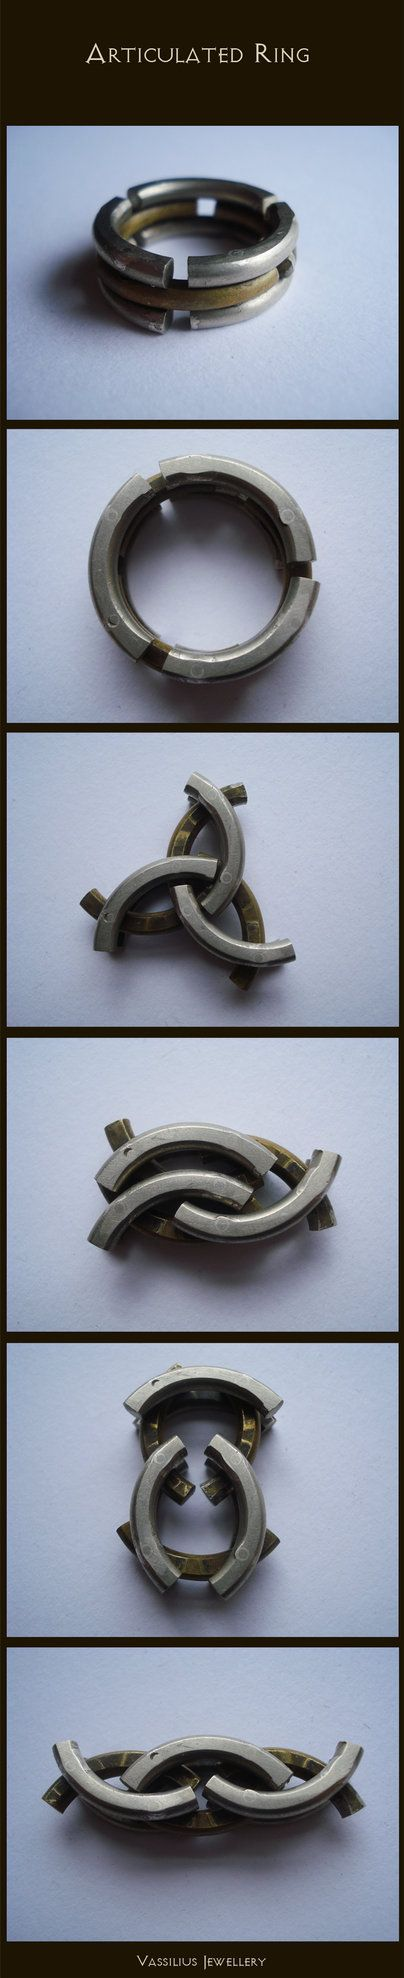 Articulated ring by ~Vassilius on deviantART